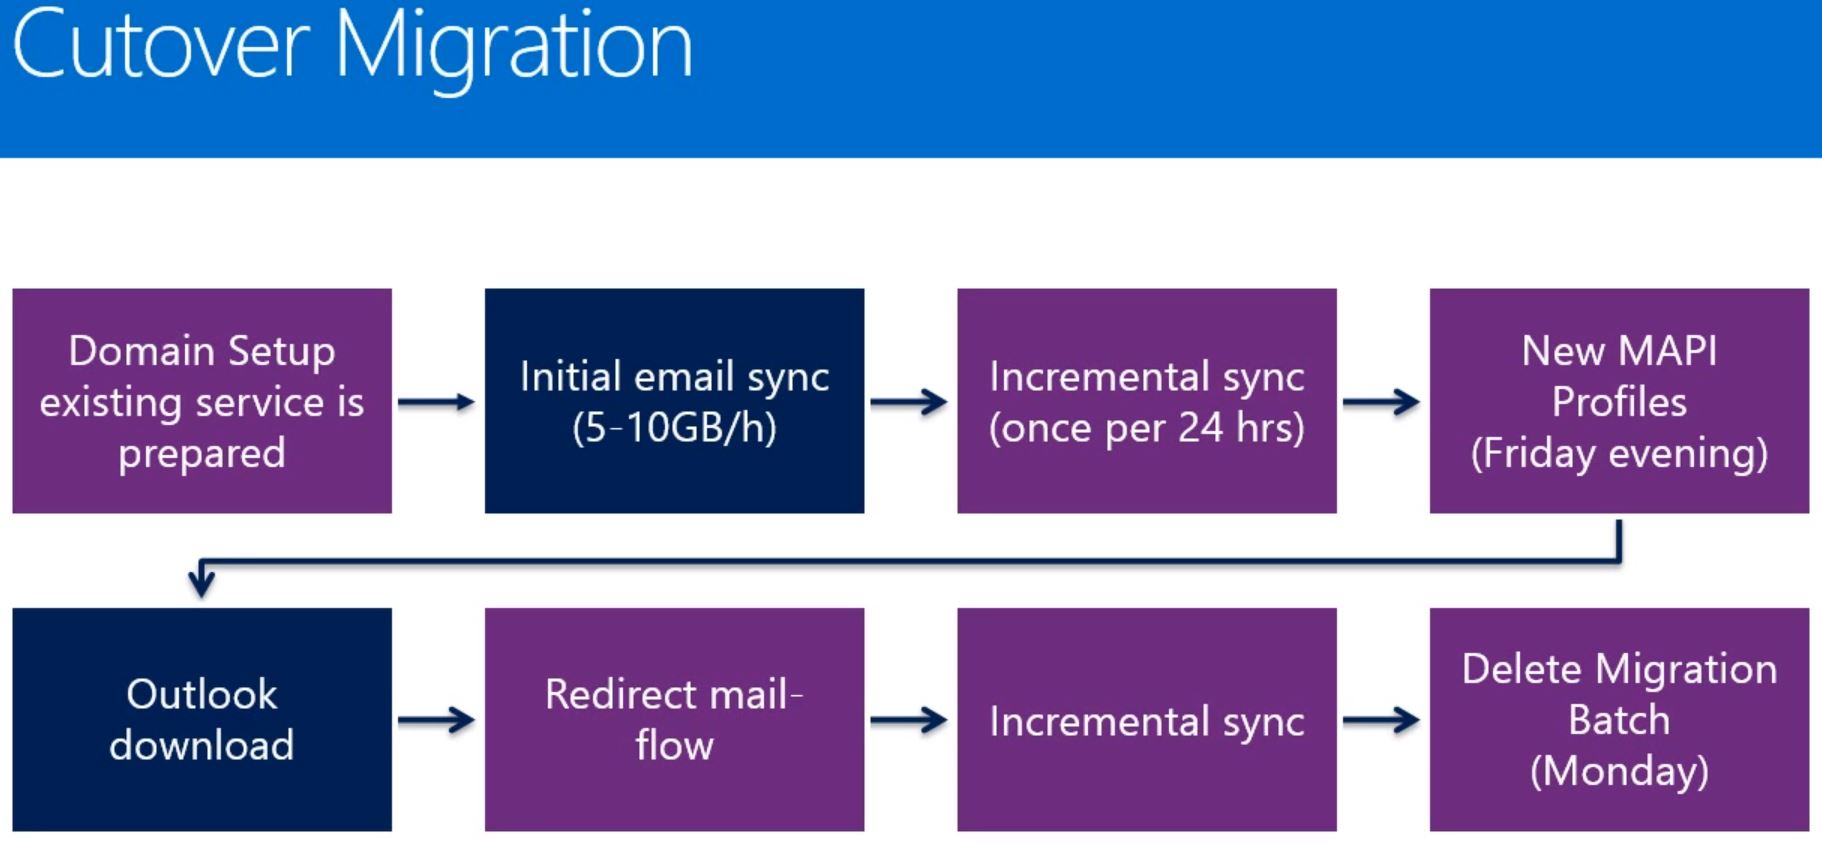 Office 365 - Cutover Migration